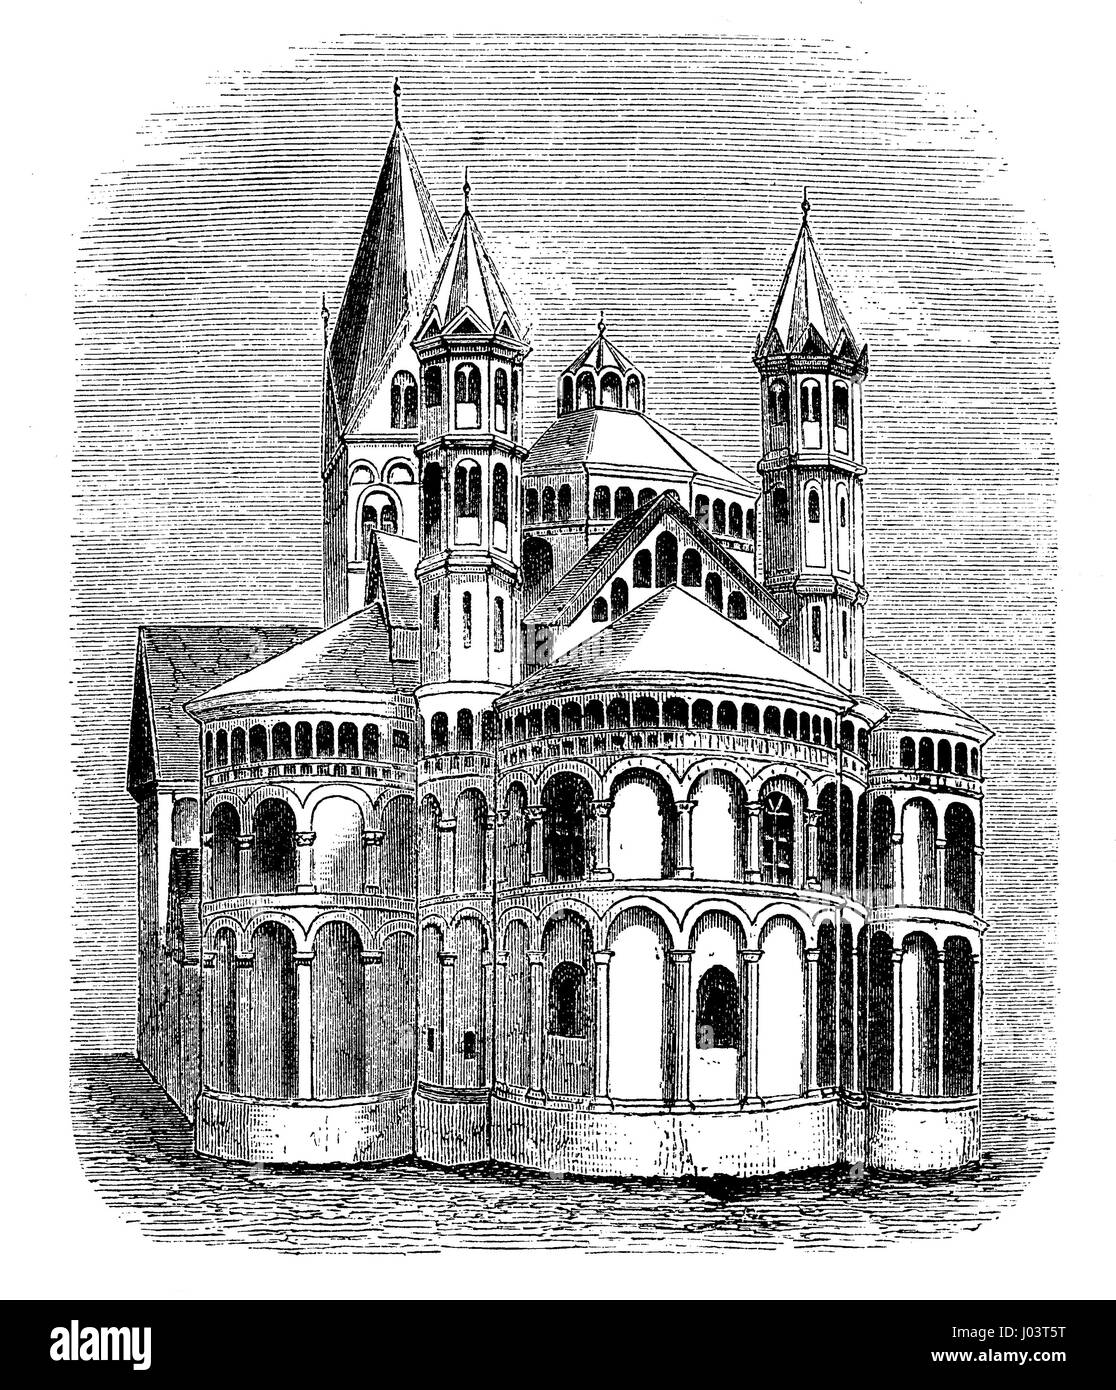 Vintage engraving of  Basilica of the Holy Apostles, built from XI century to XIII century in Cologne (Koeln) Germany - Stock Image